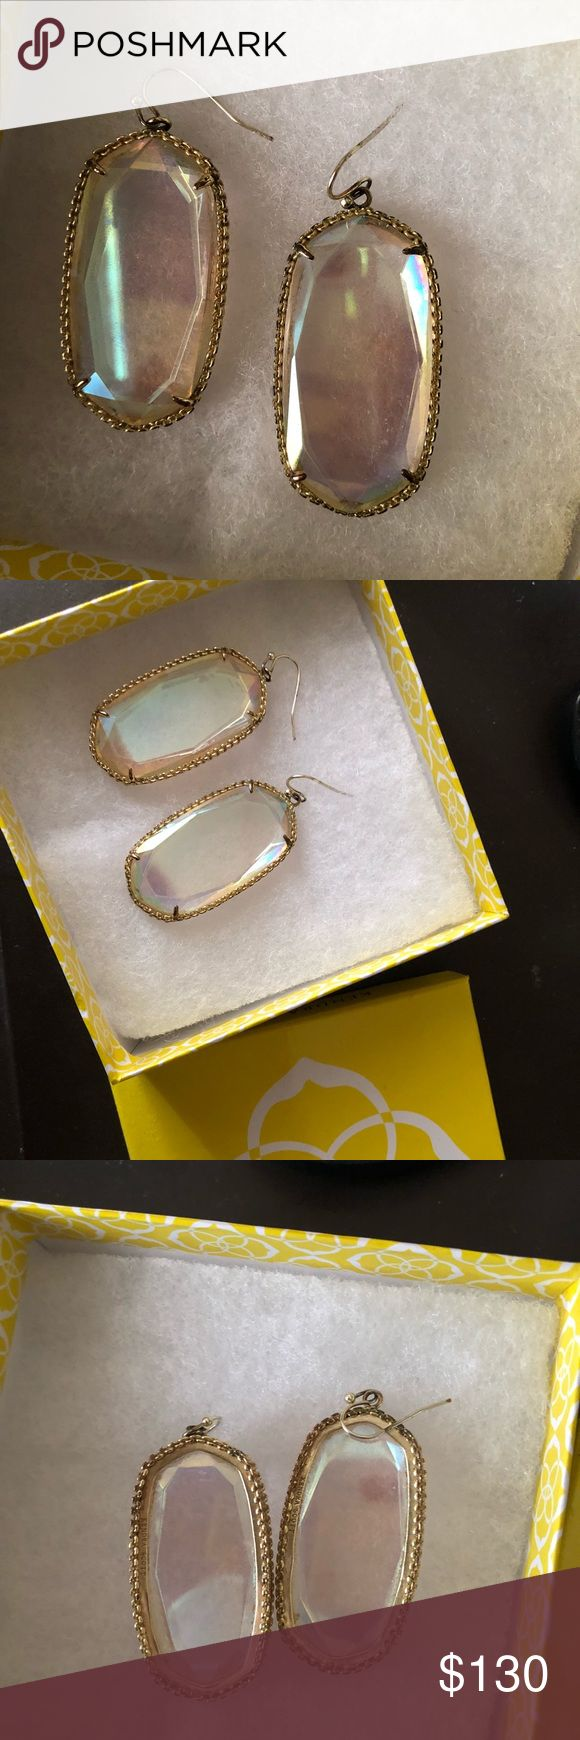 Kendra Scott Danielle * RARE IRIDESCENT * Kendra Scott Danielle  Only worn a few times! Comes with box and dust baggie. No back ends for the earrings. Very light smudge on one earring but very unnoticeable.  Open to reasonable offers. Kendra Scott Jewelry Earrings